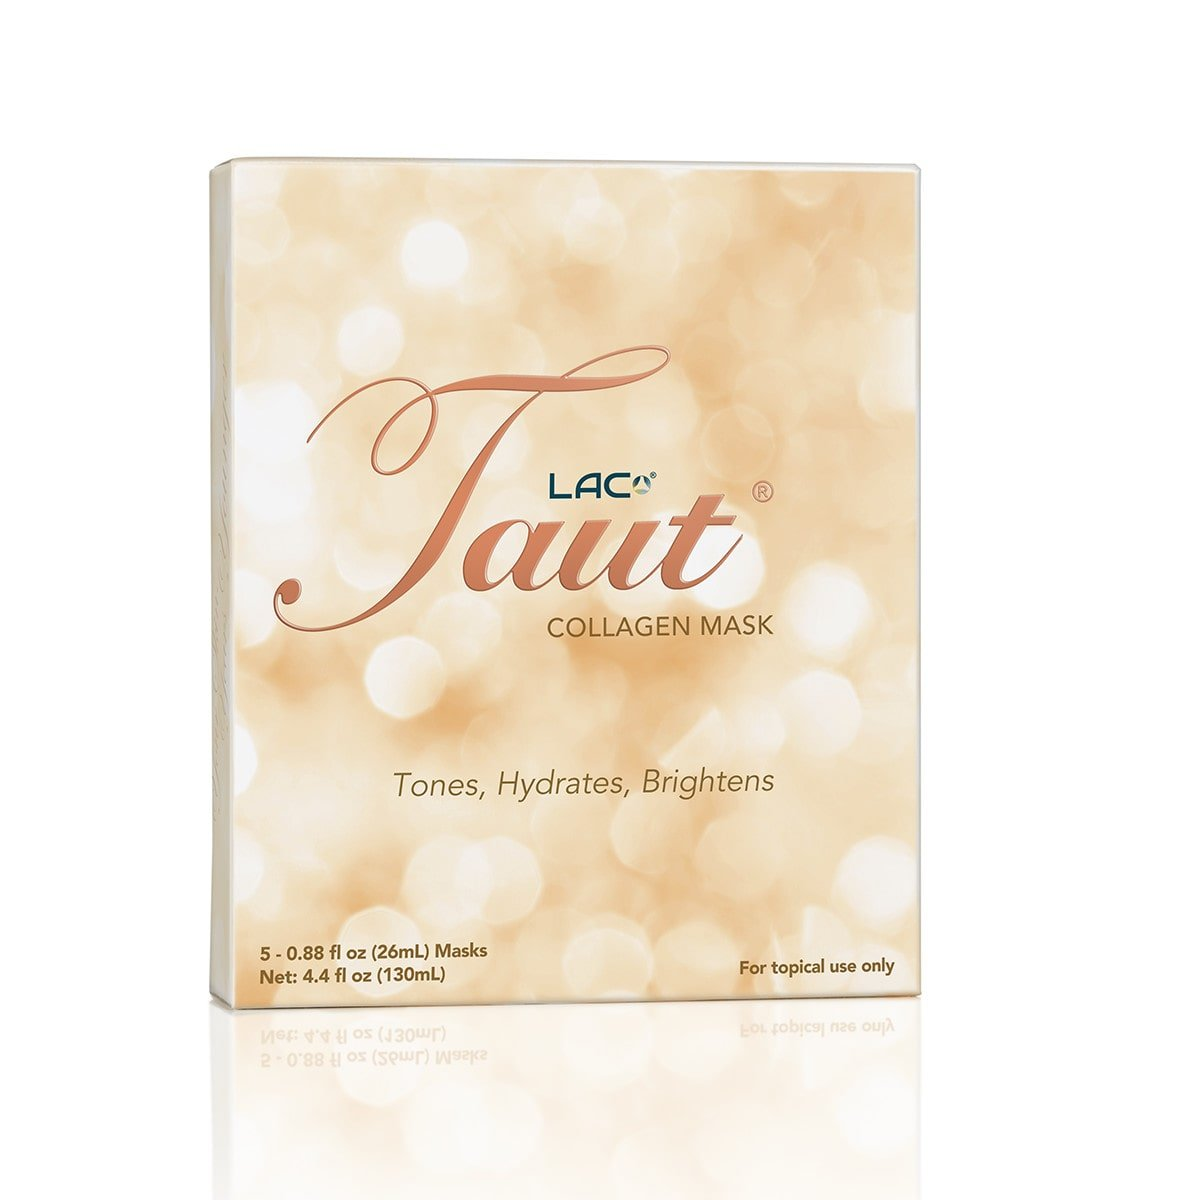 Taut Collagen Masks - Tone, Hydrate, Brighten | Renewalliance Inc DBA Taut®USA